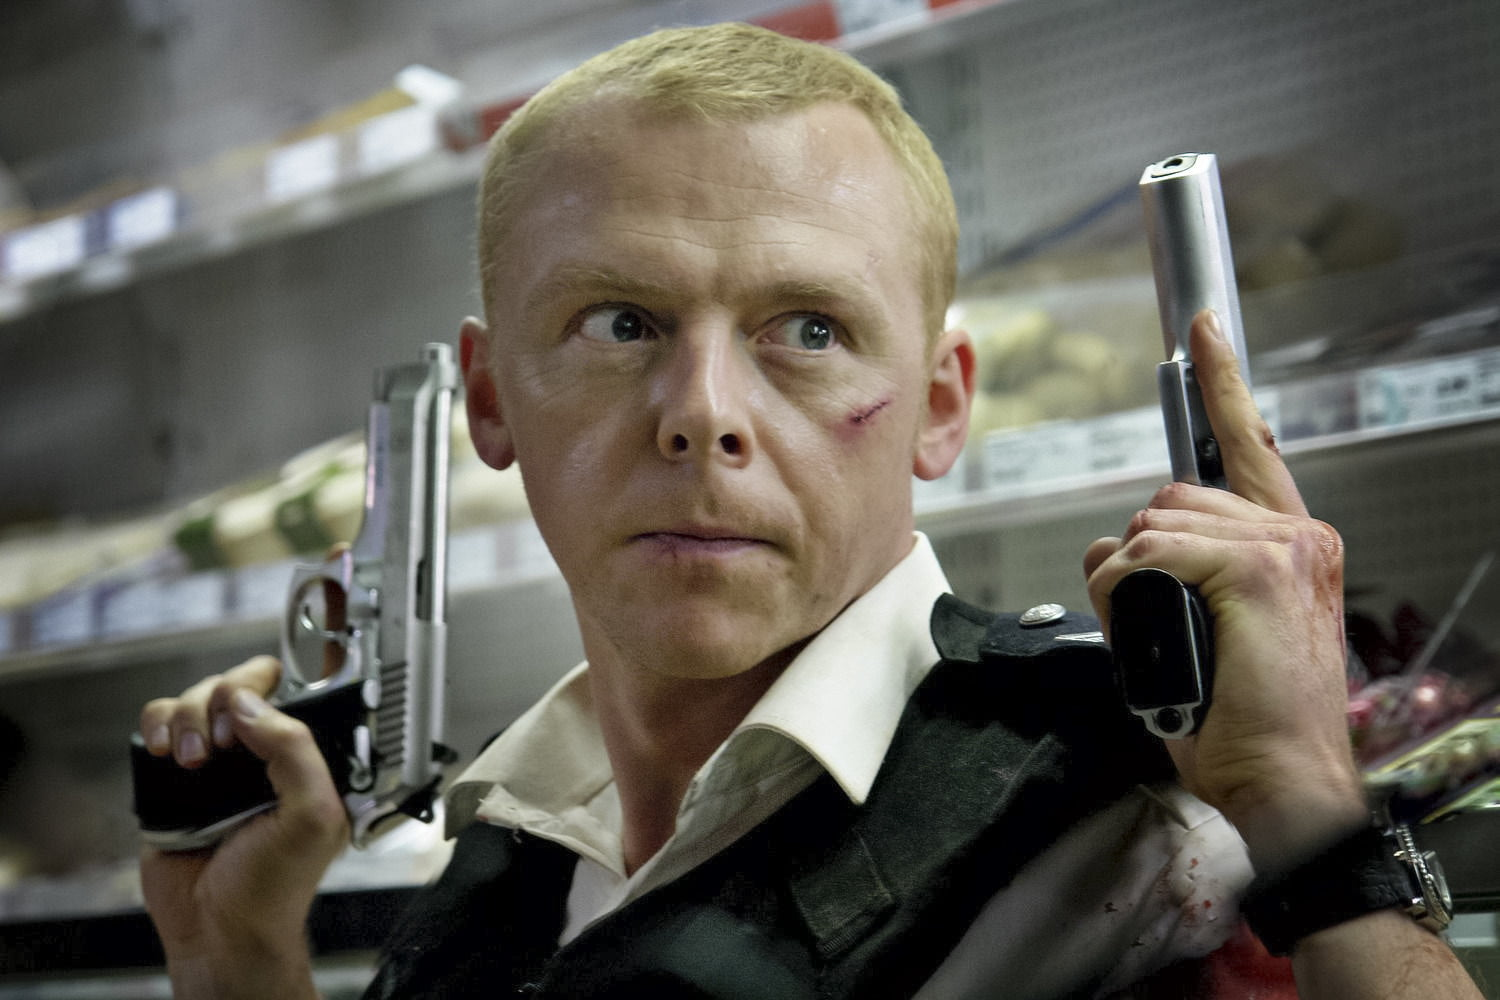 Simon Pegg on humor, horror, a 'Hot Fuzz' TV show, and a Tarantino Star Trek